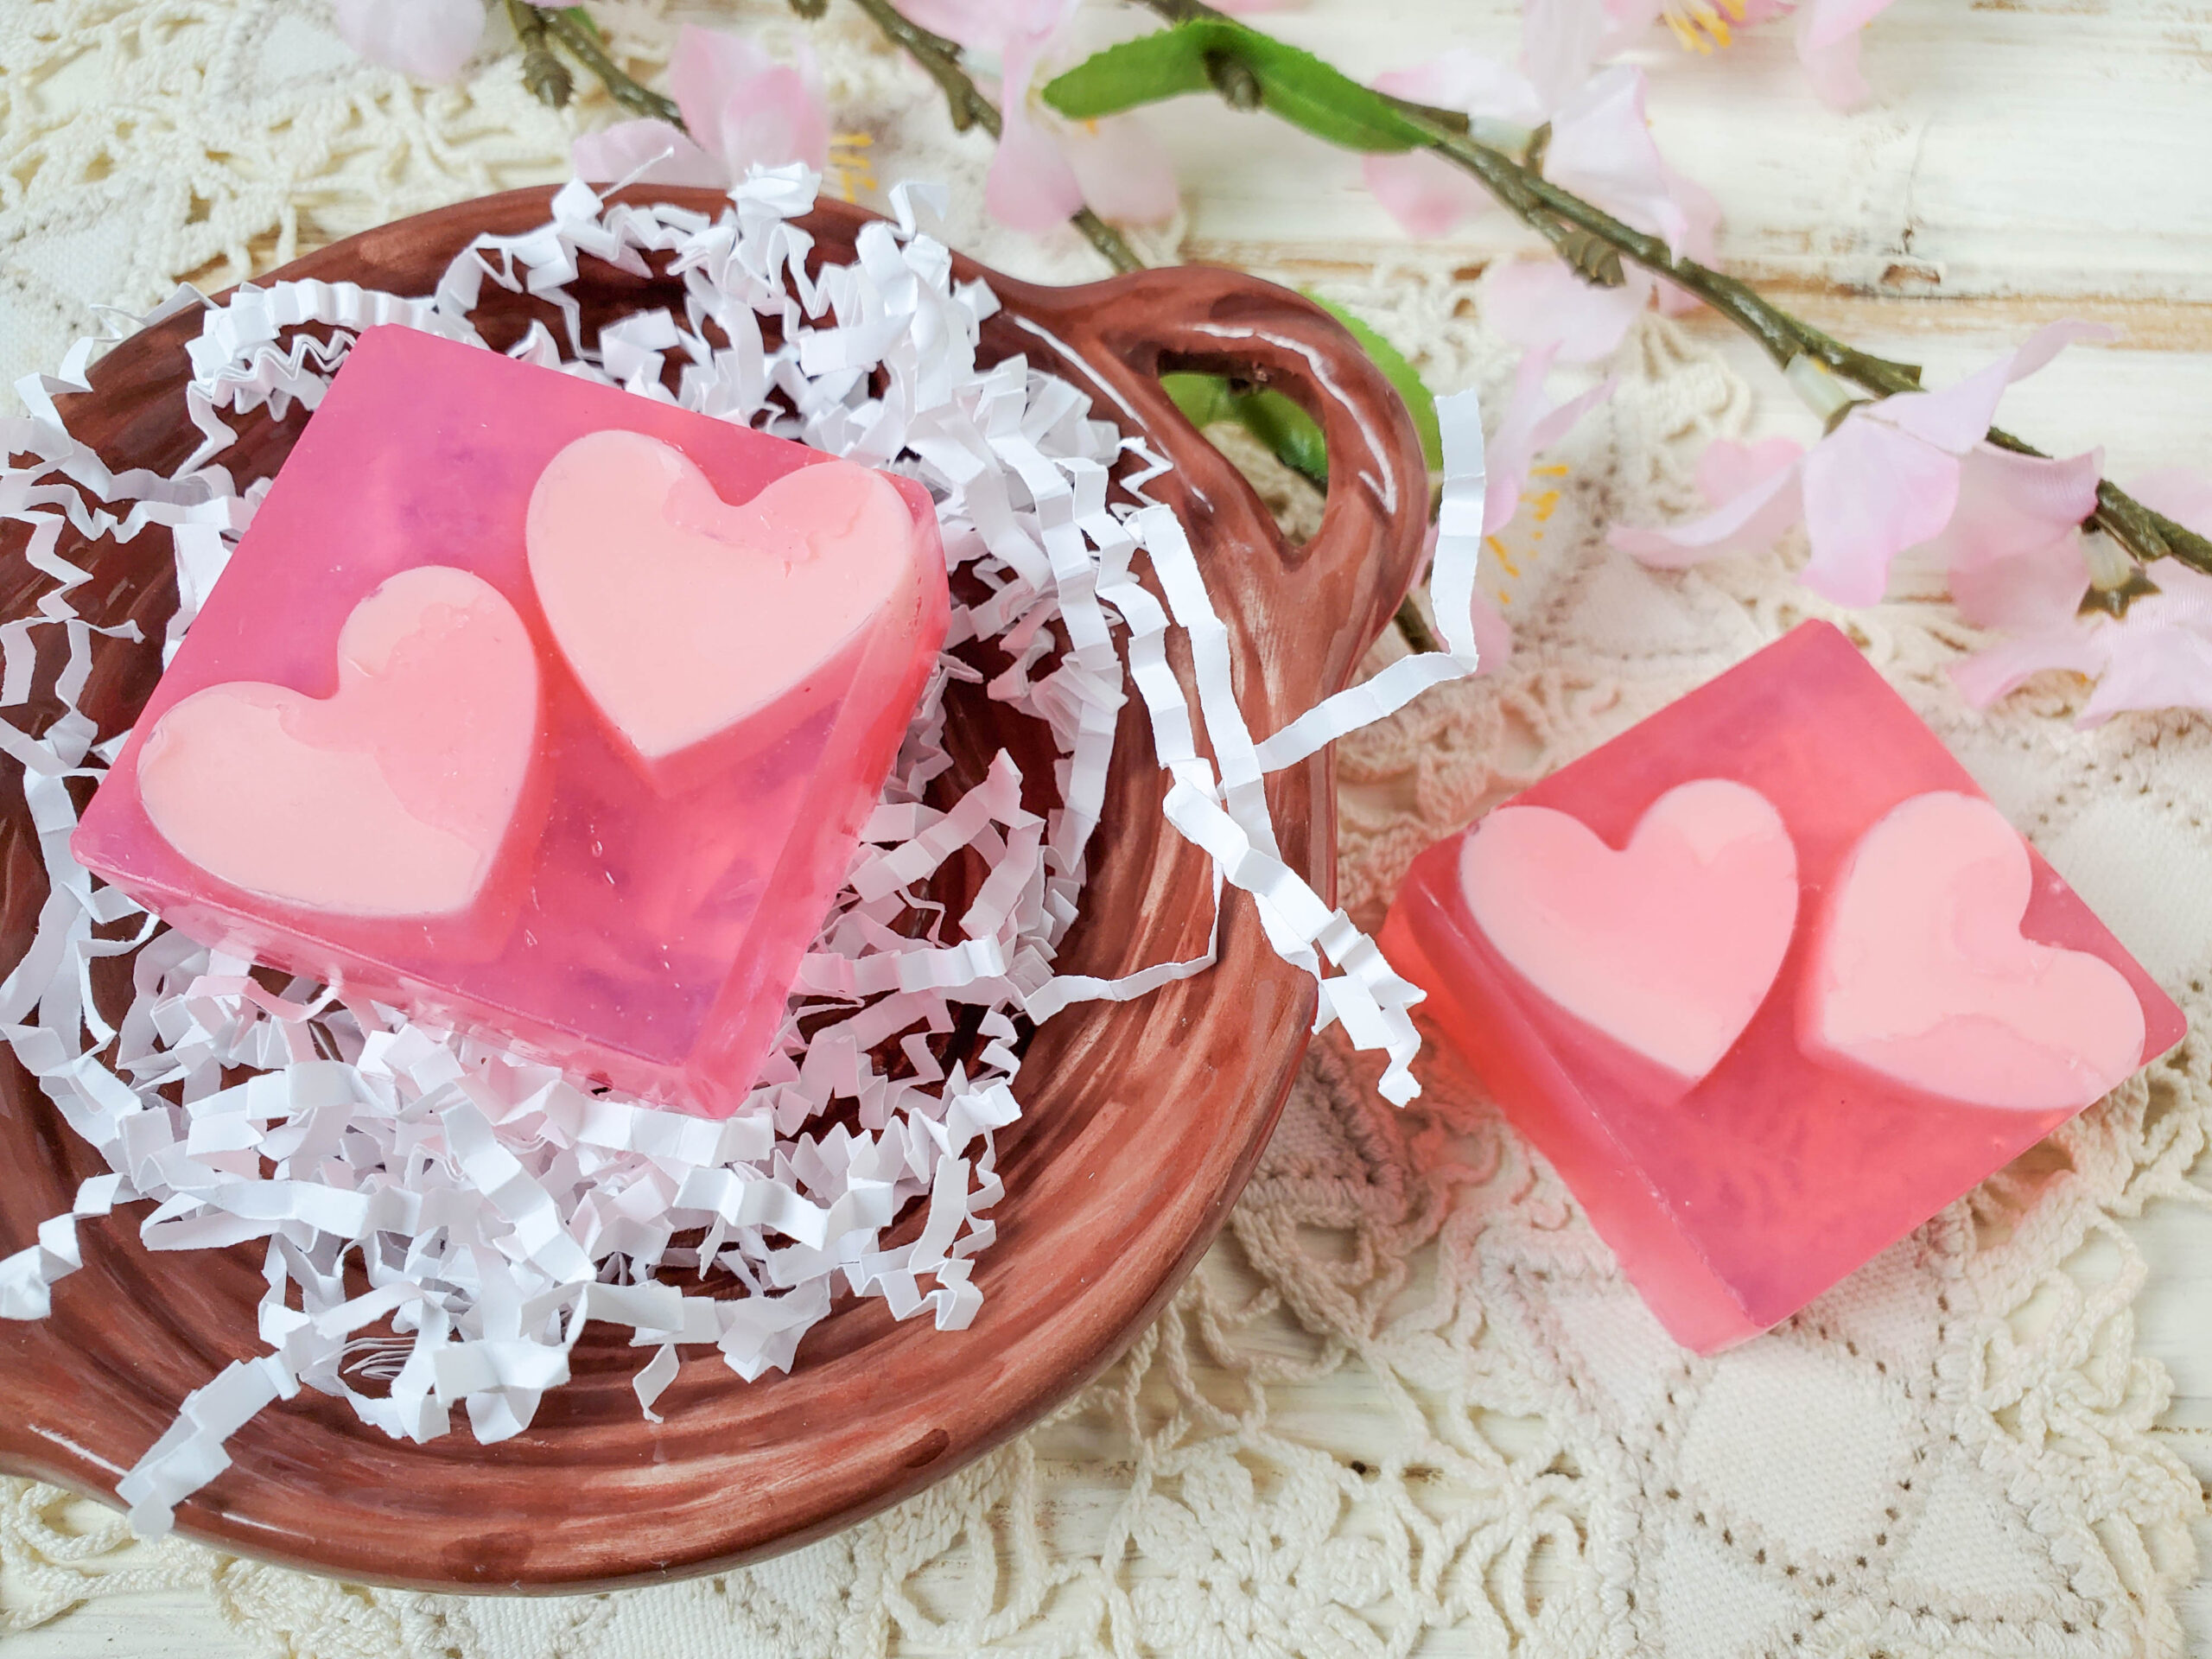 Heart Homemade Soap Without Lye